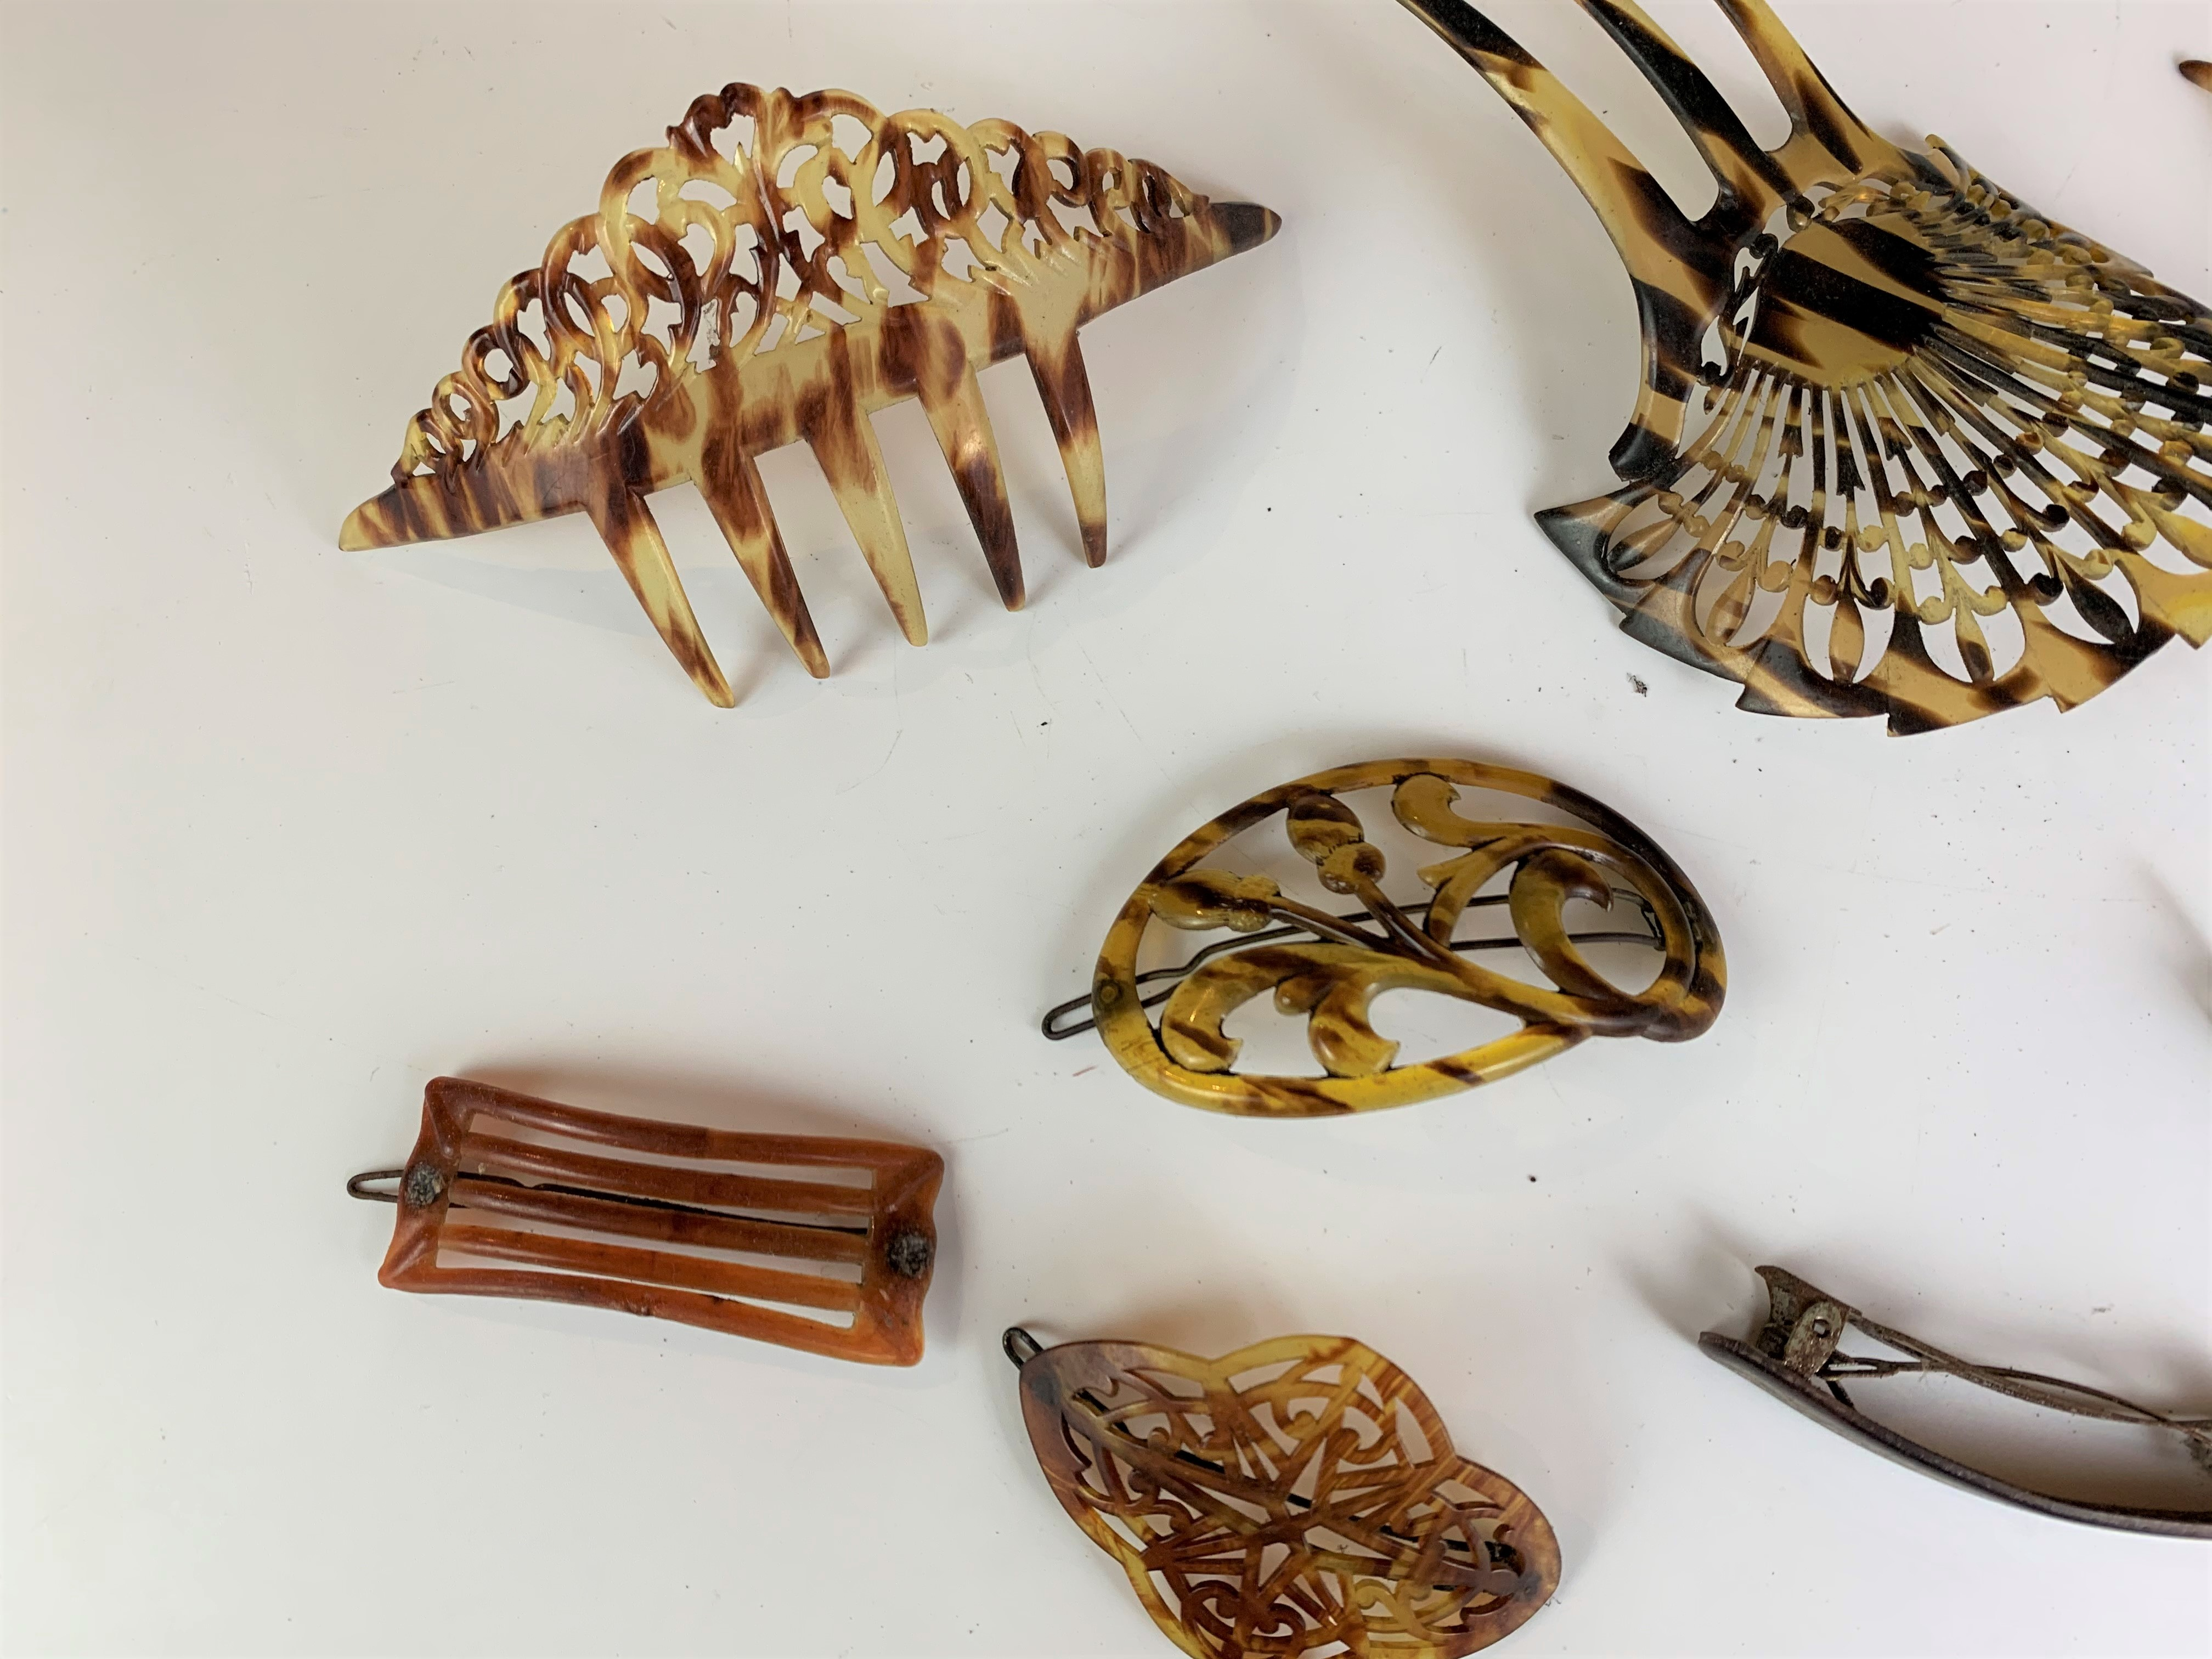 6 vintage hair clips and 3 vintage hair combs - Image 2 of 5